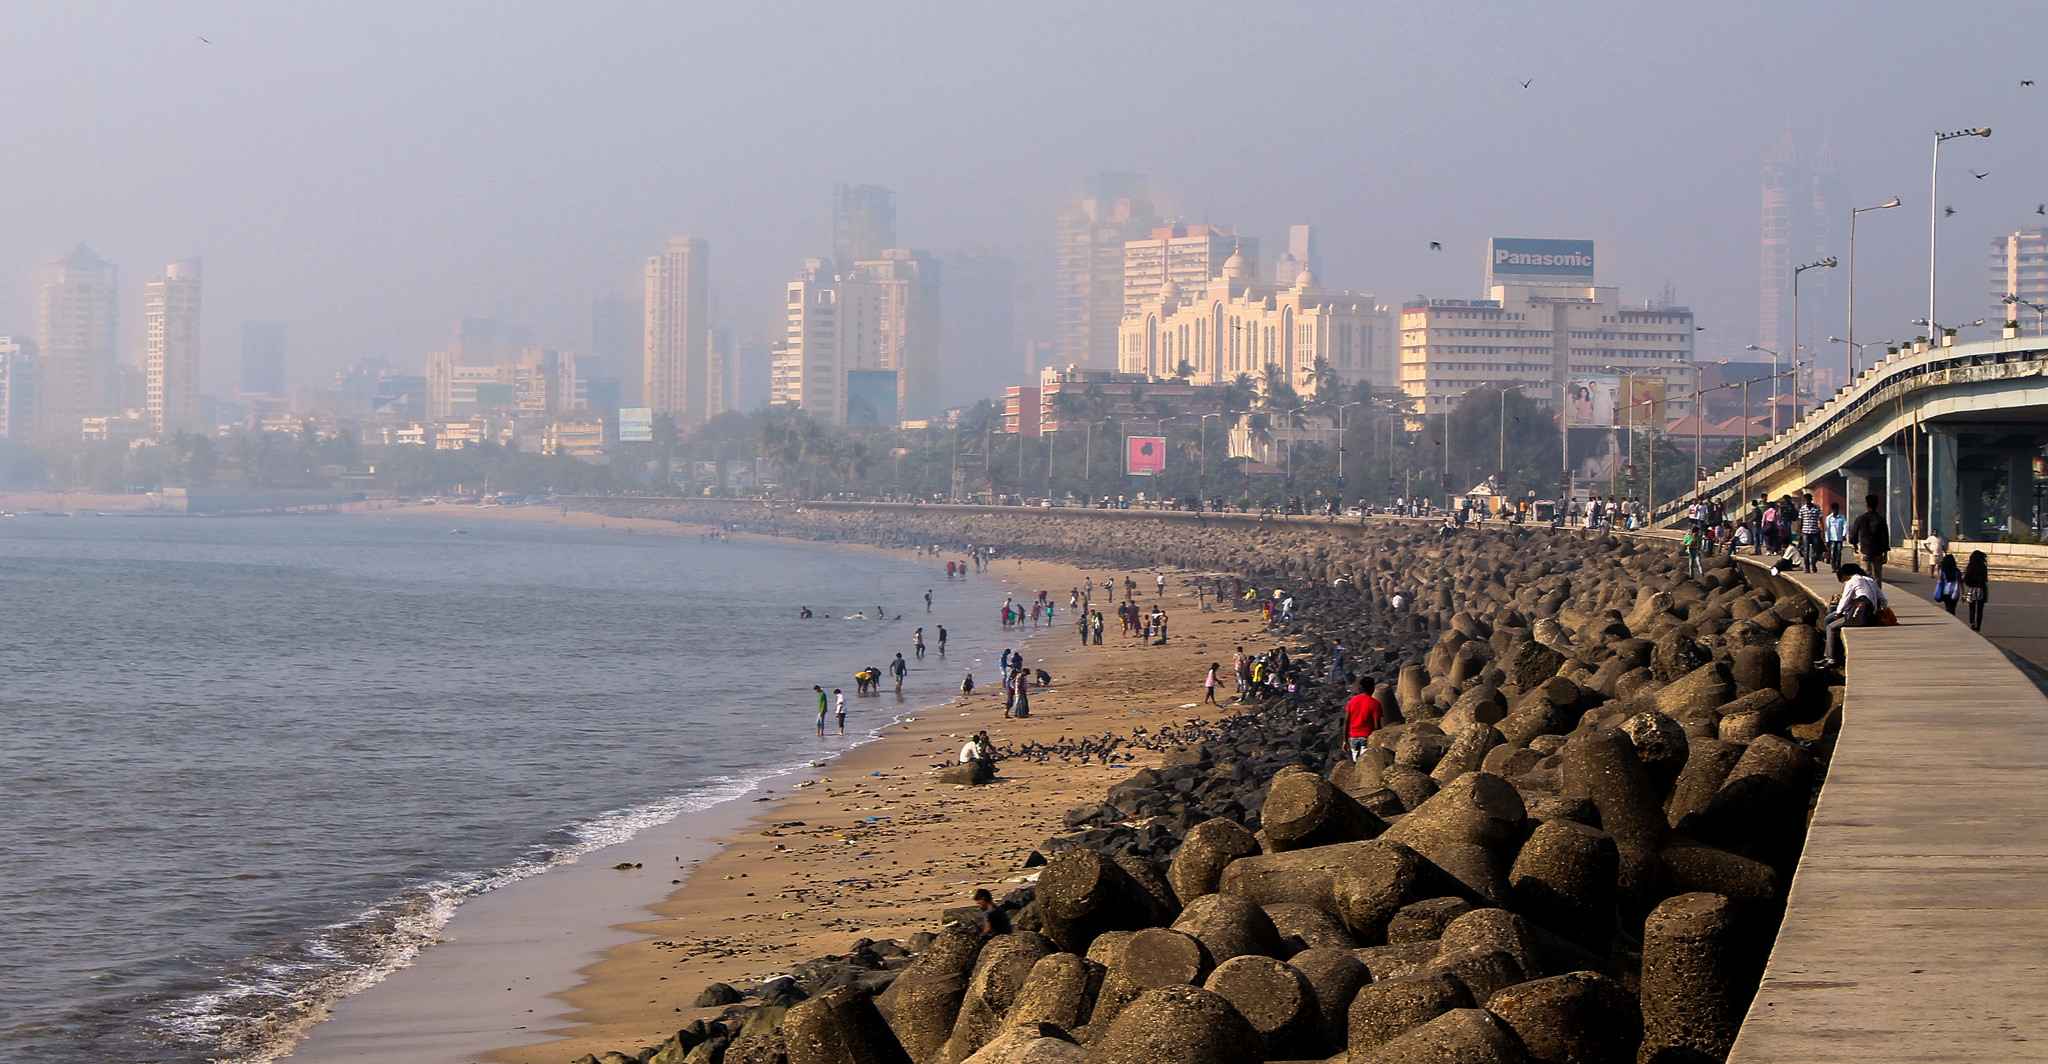 Mumbai's New Development Plan Is About More Real Estate for Developers